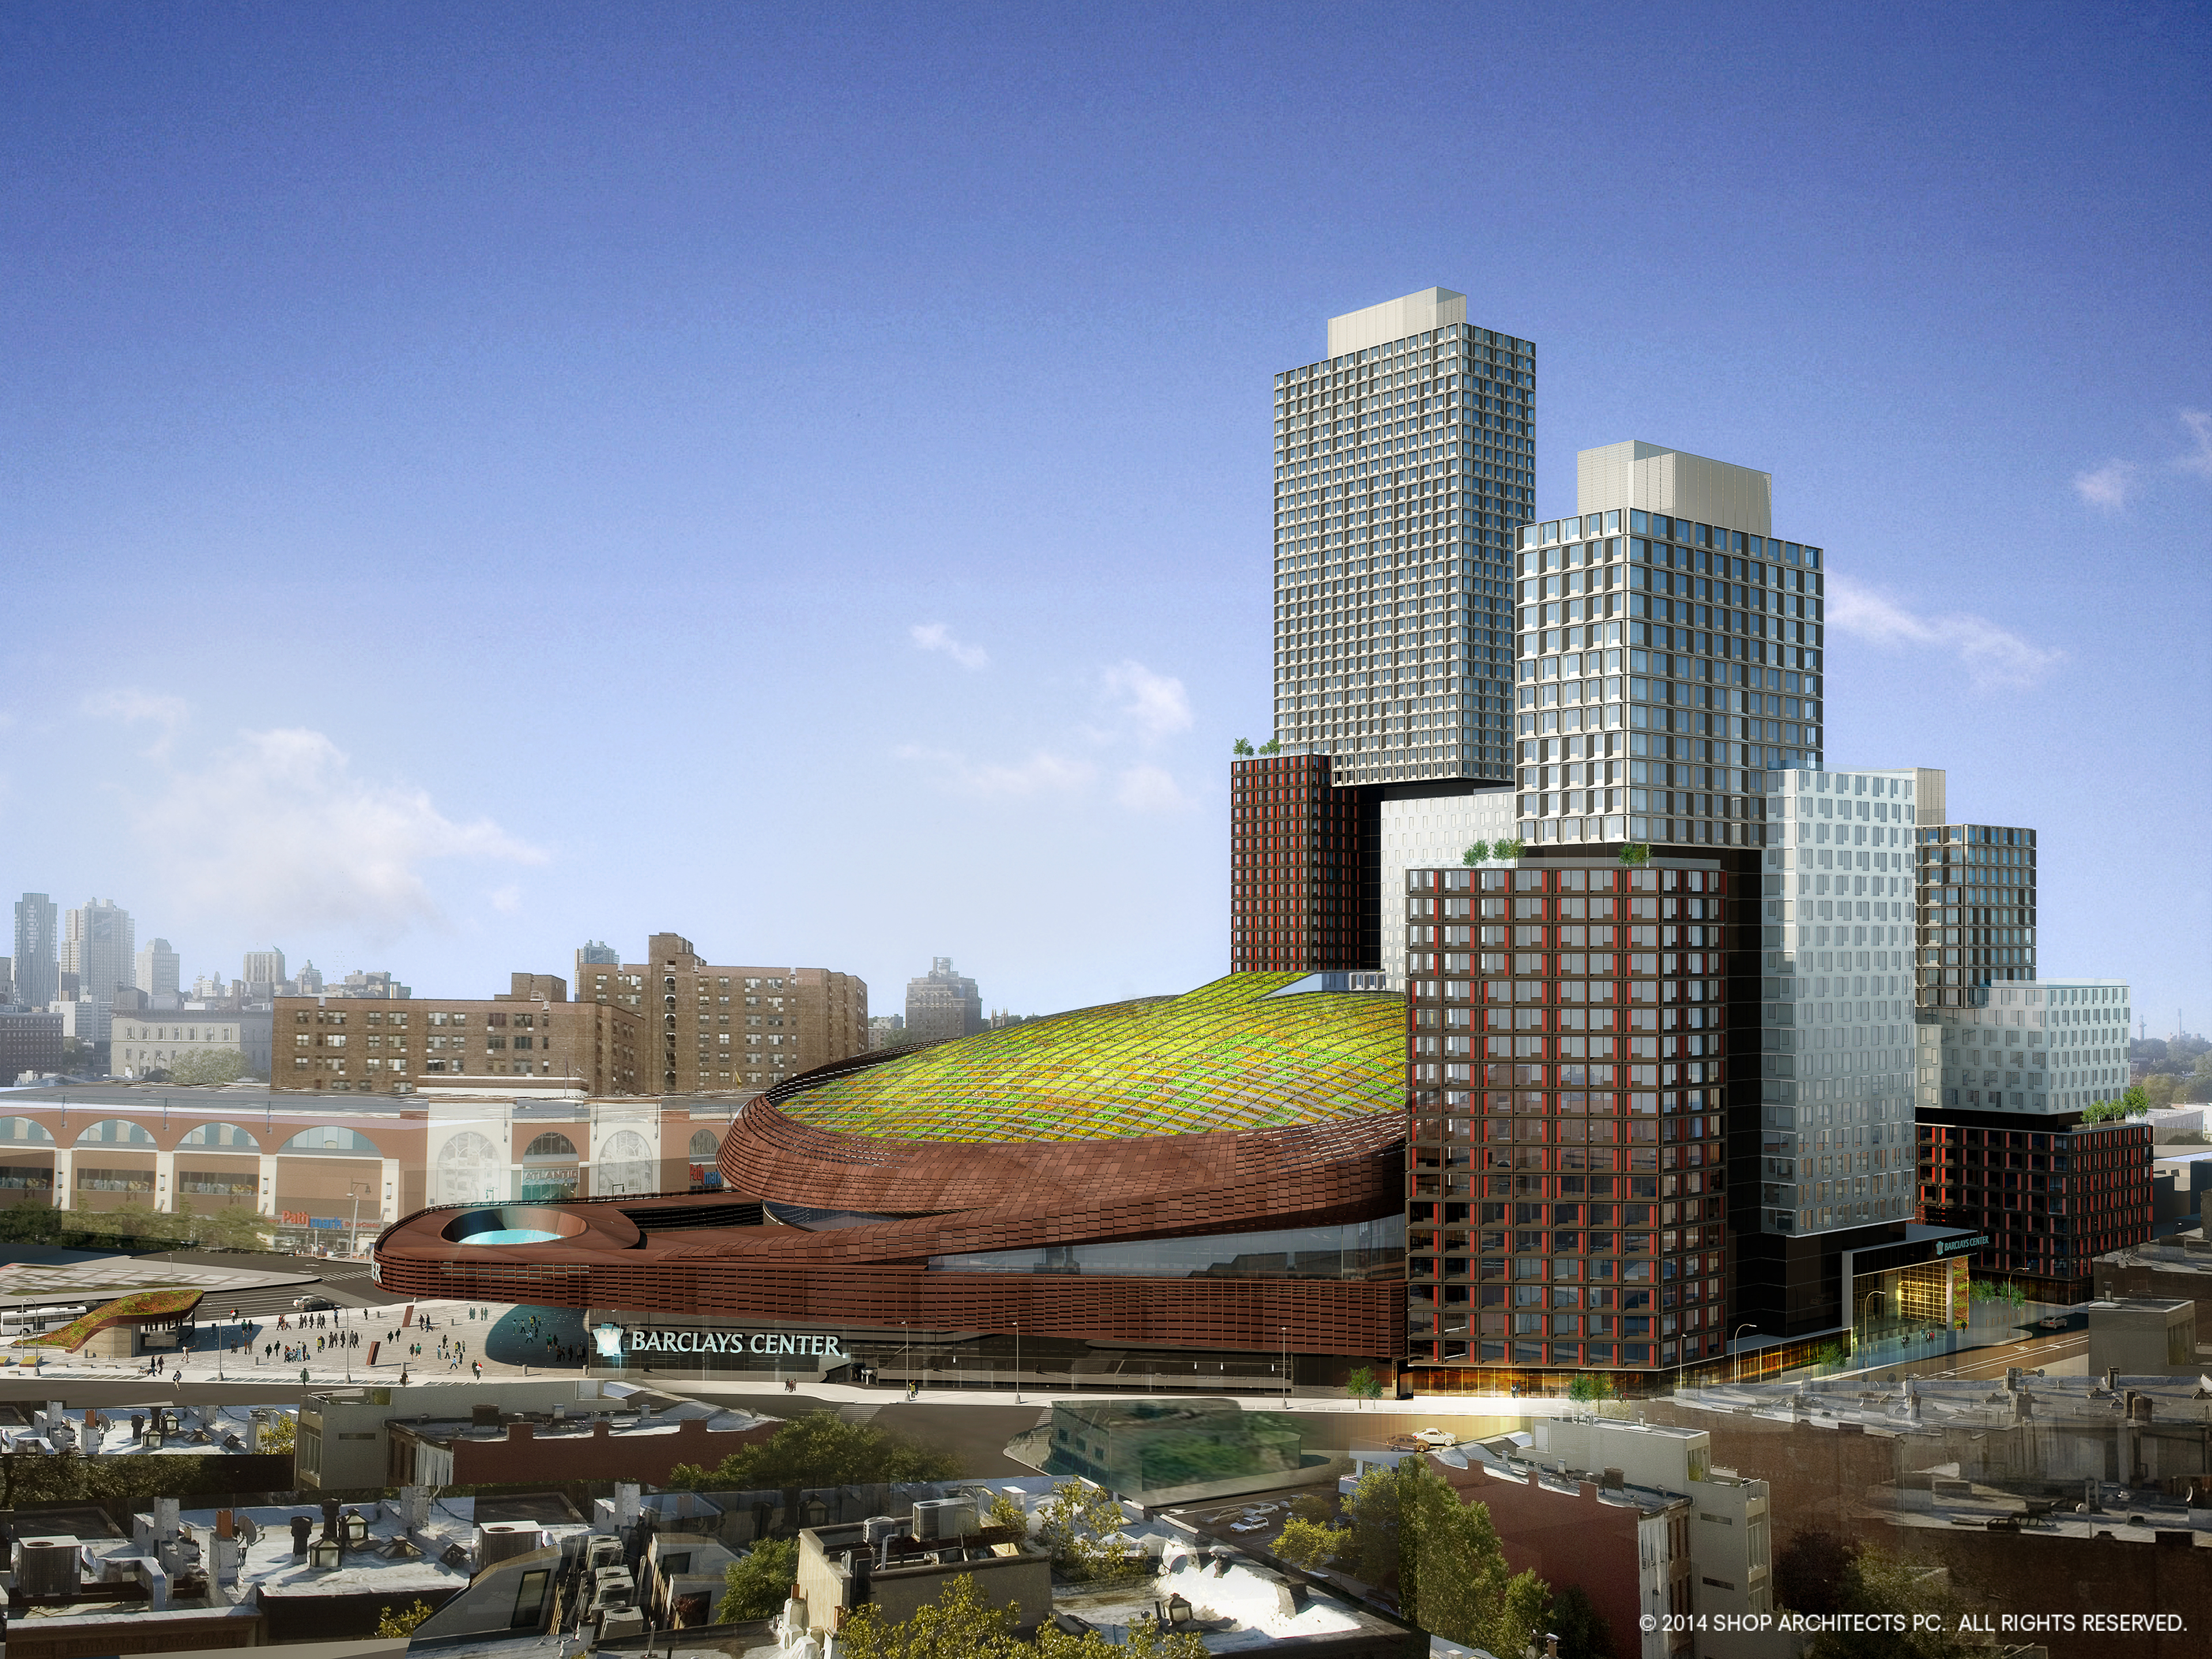 Green roof slated for barclays center in brooklyn green for The barclay